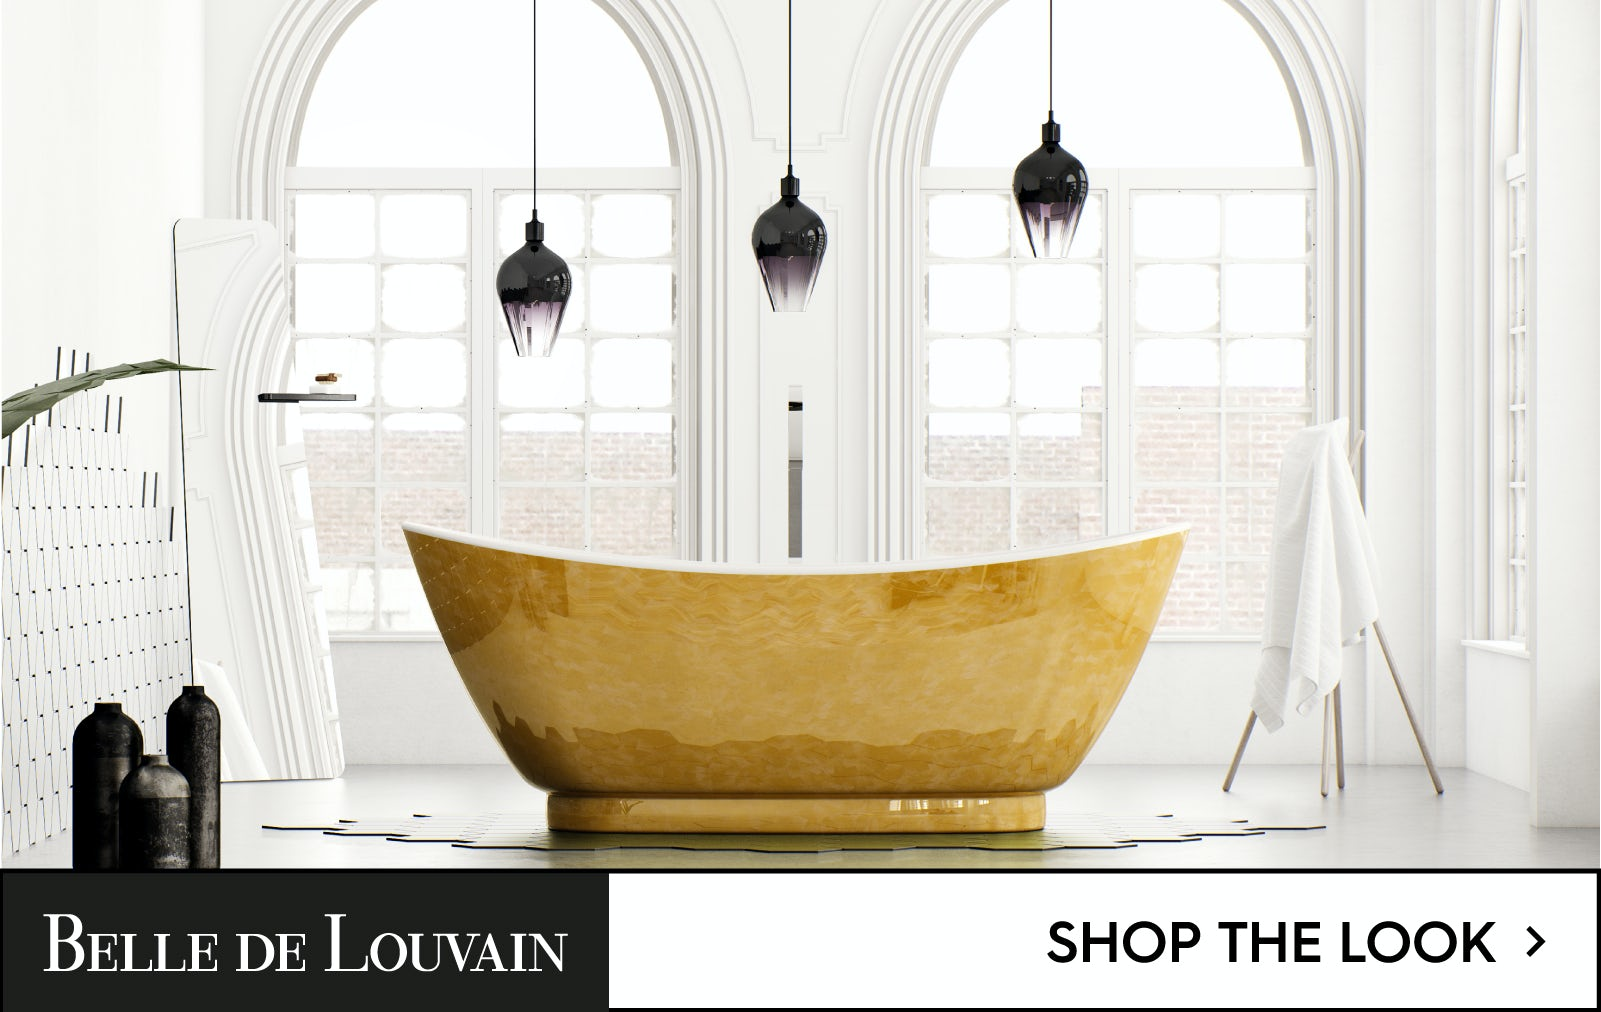 Belle de Louvain - shop the look